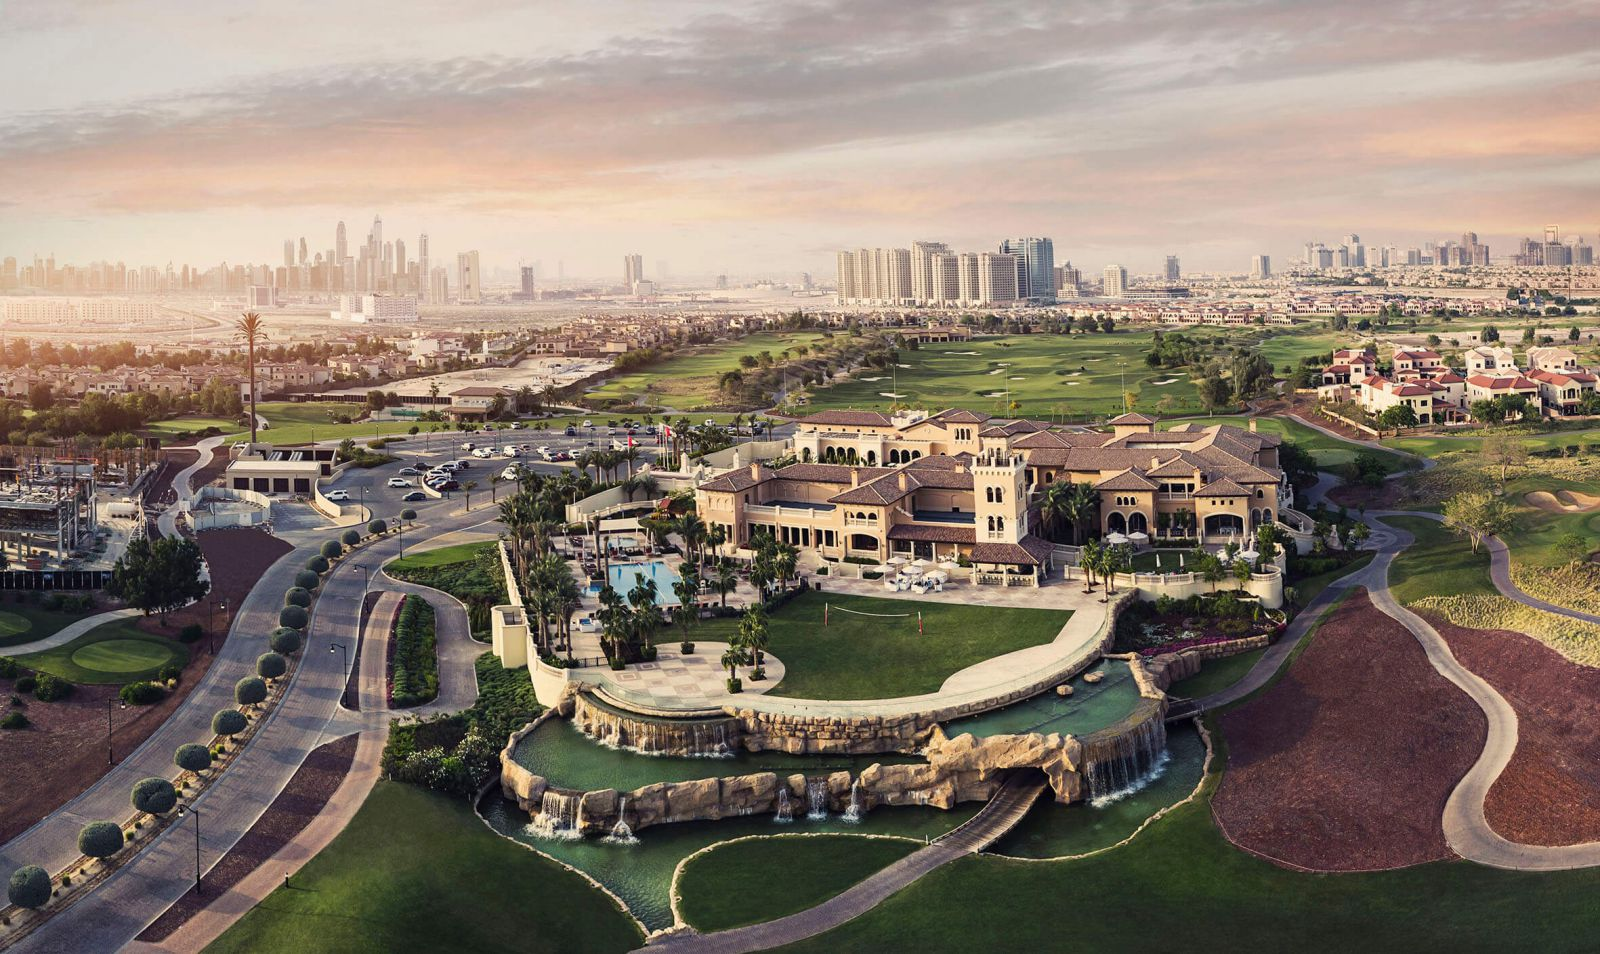 JUMEIRAH GOLF ESTATES TO OFFER 1% MONTHLY INSTALMENTS OFFER FOR ALANDALUS APARTMENTS AT CITYSCAPE GLOBAL